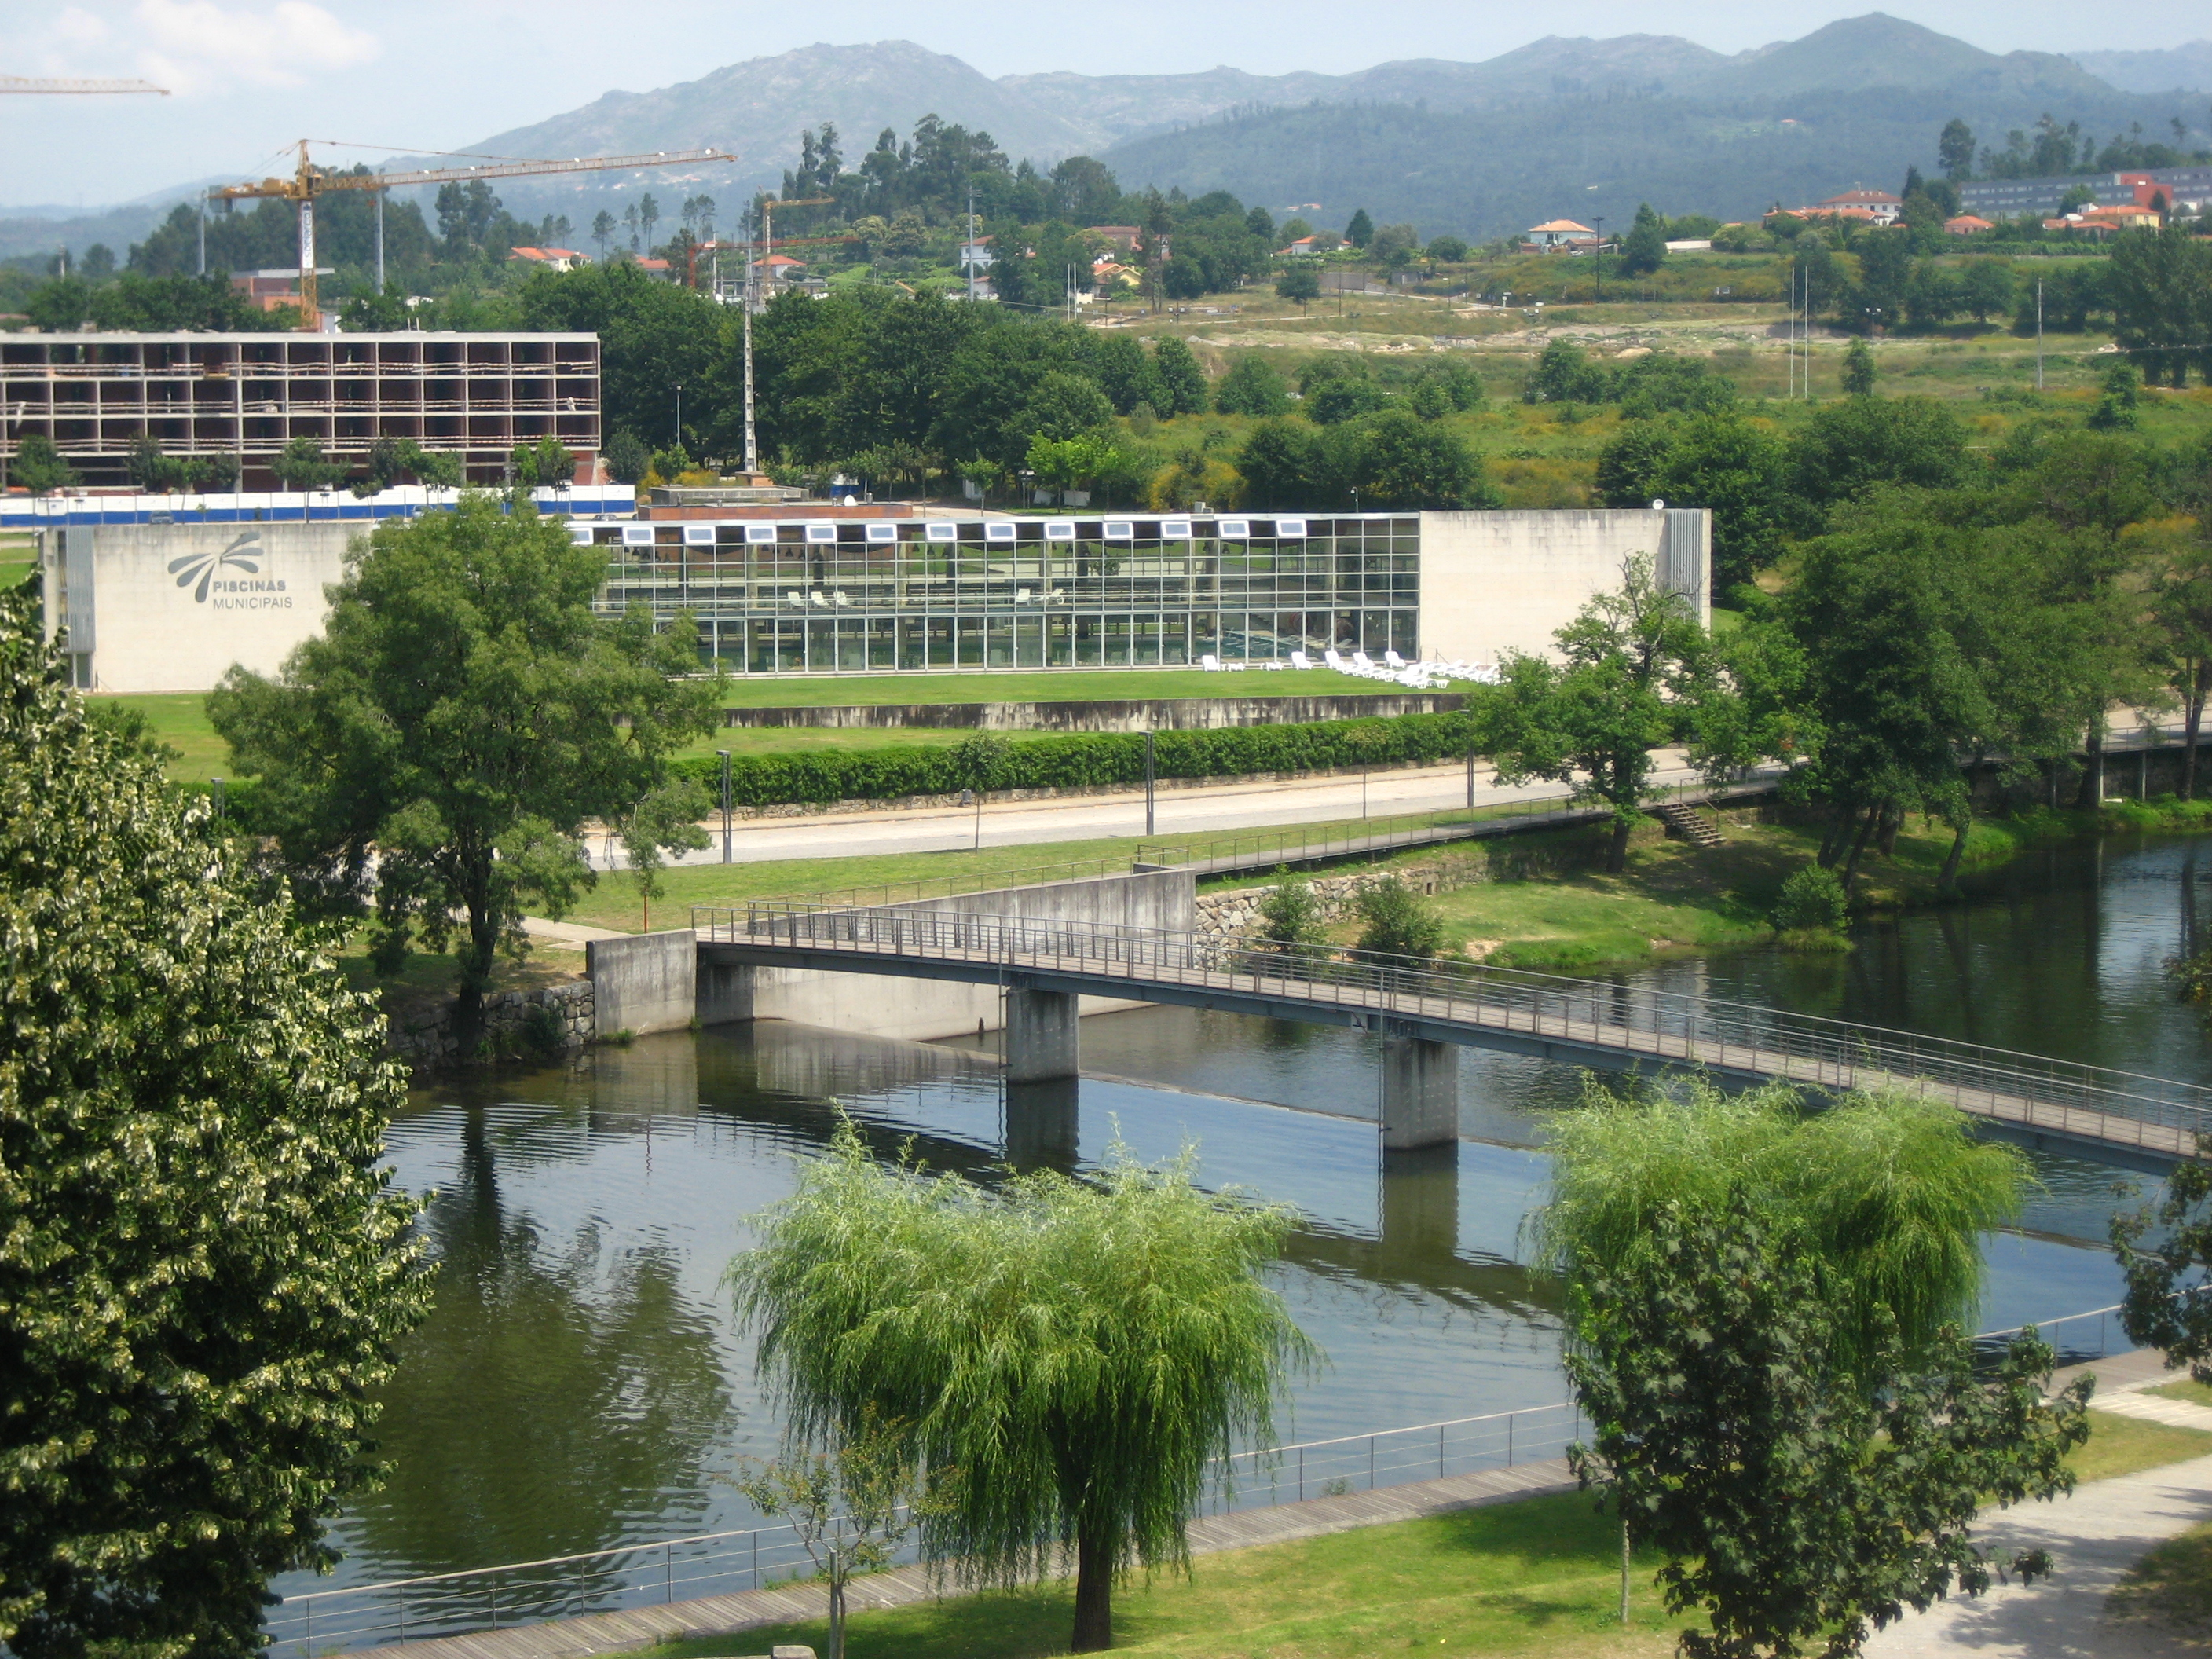 arcos de valdevez dating site Located along the banks of the vez river in the pleasant and historic village of arcos de valdevez, luna arcos hotel is surrounded by nature and part of a sports complex with football camps.